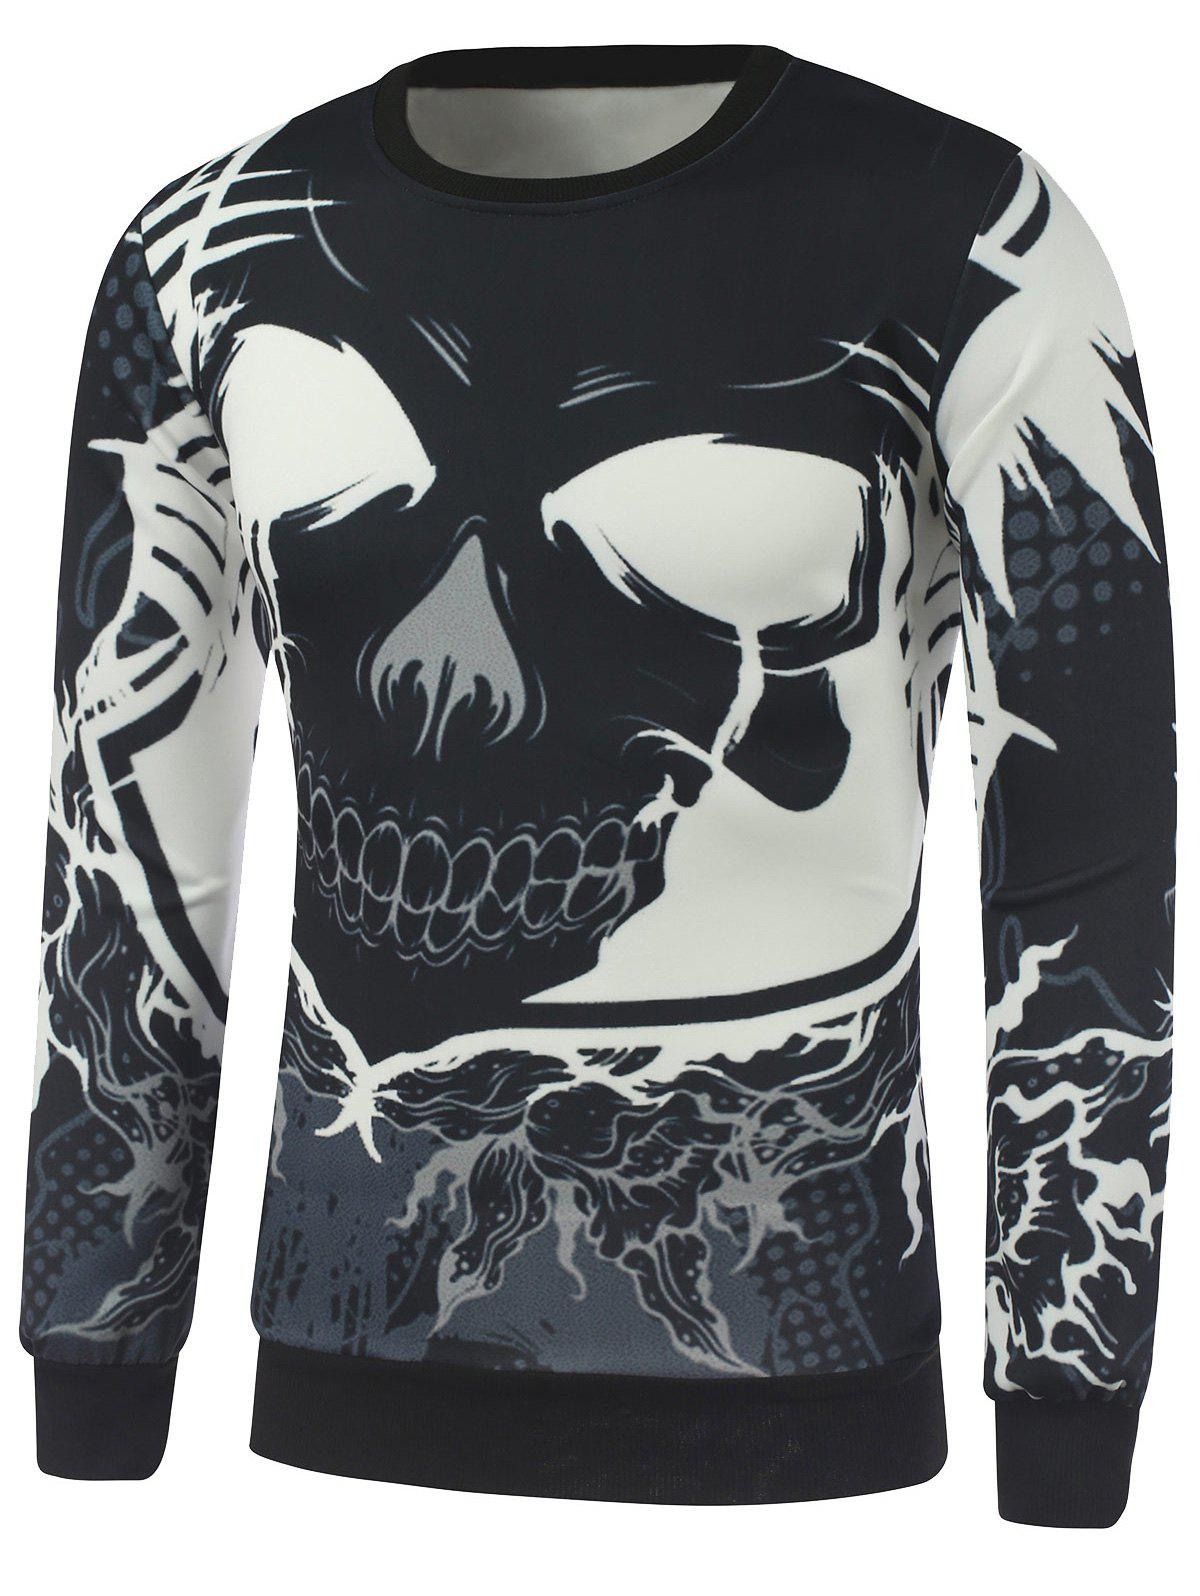 Cheap Crew Neck Cartoon Skull Printed Sweatshirt